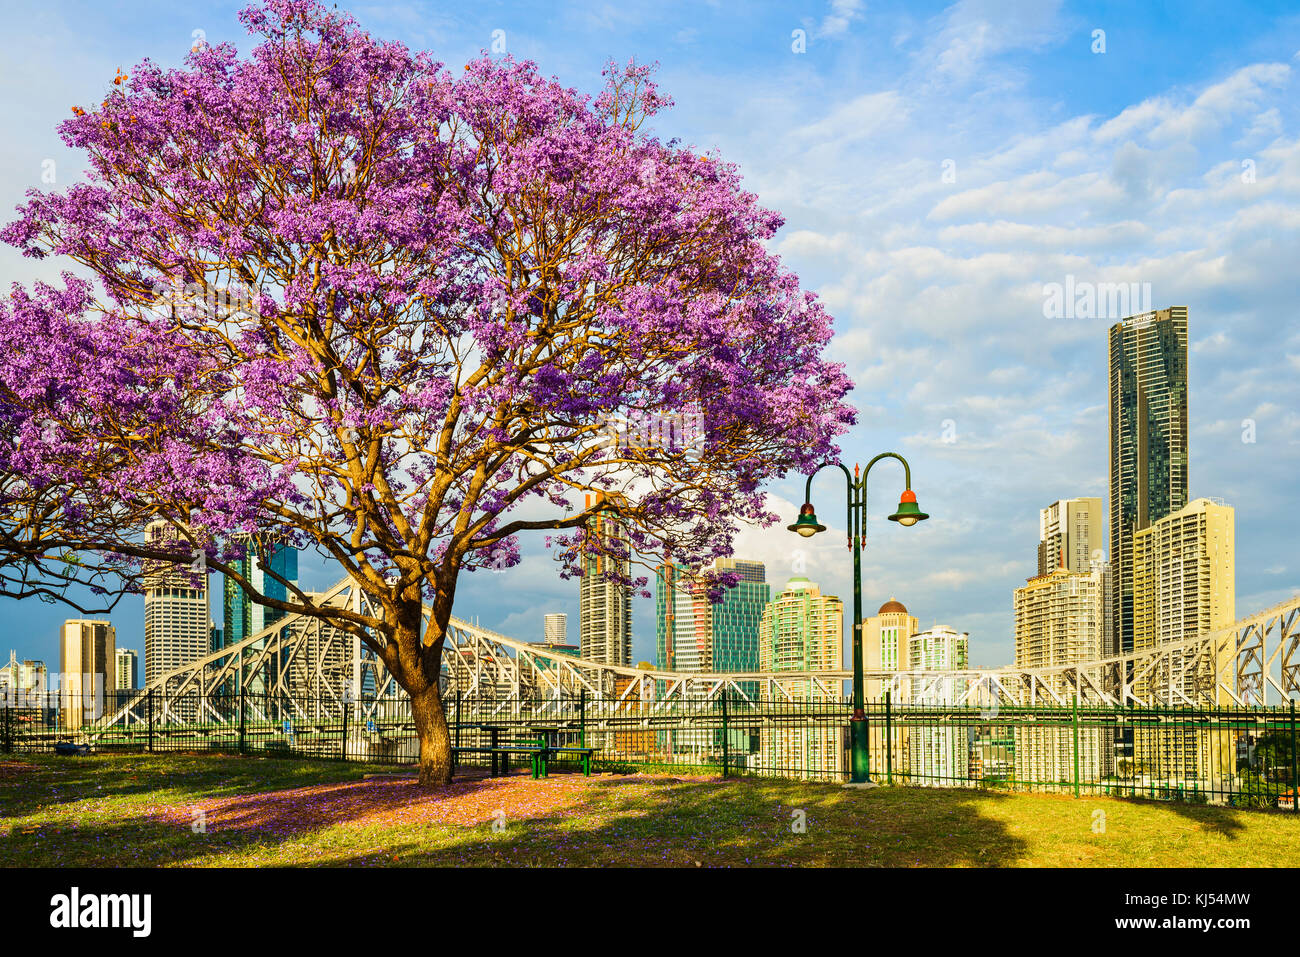 Jacaranda blooming at Wilsons Outlook Reserve, Brisbane, Queensland, Australia - Stock Image